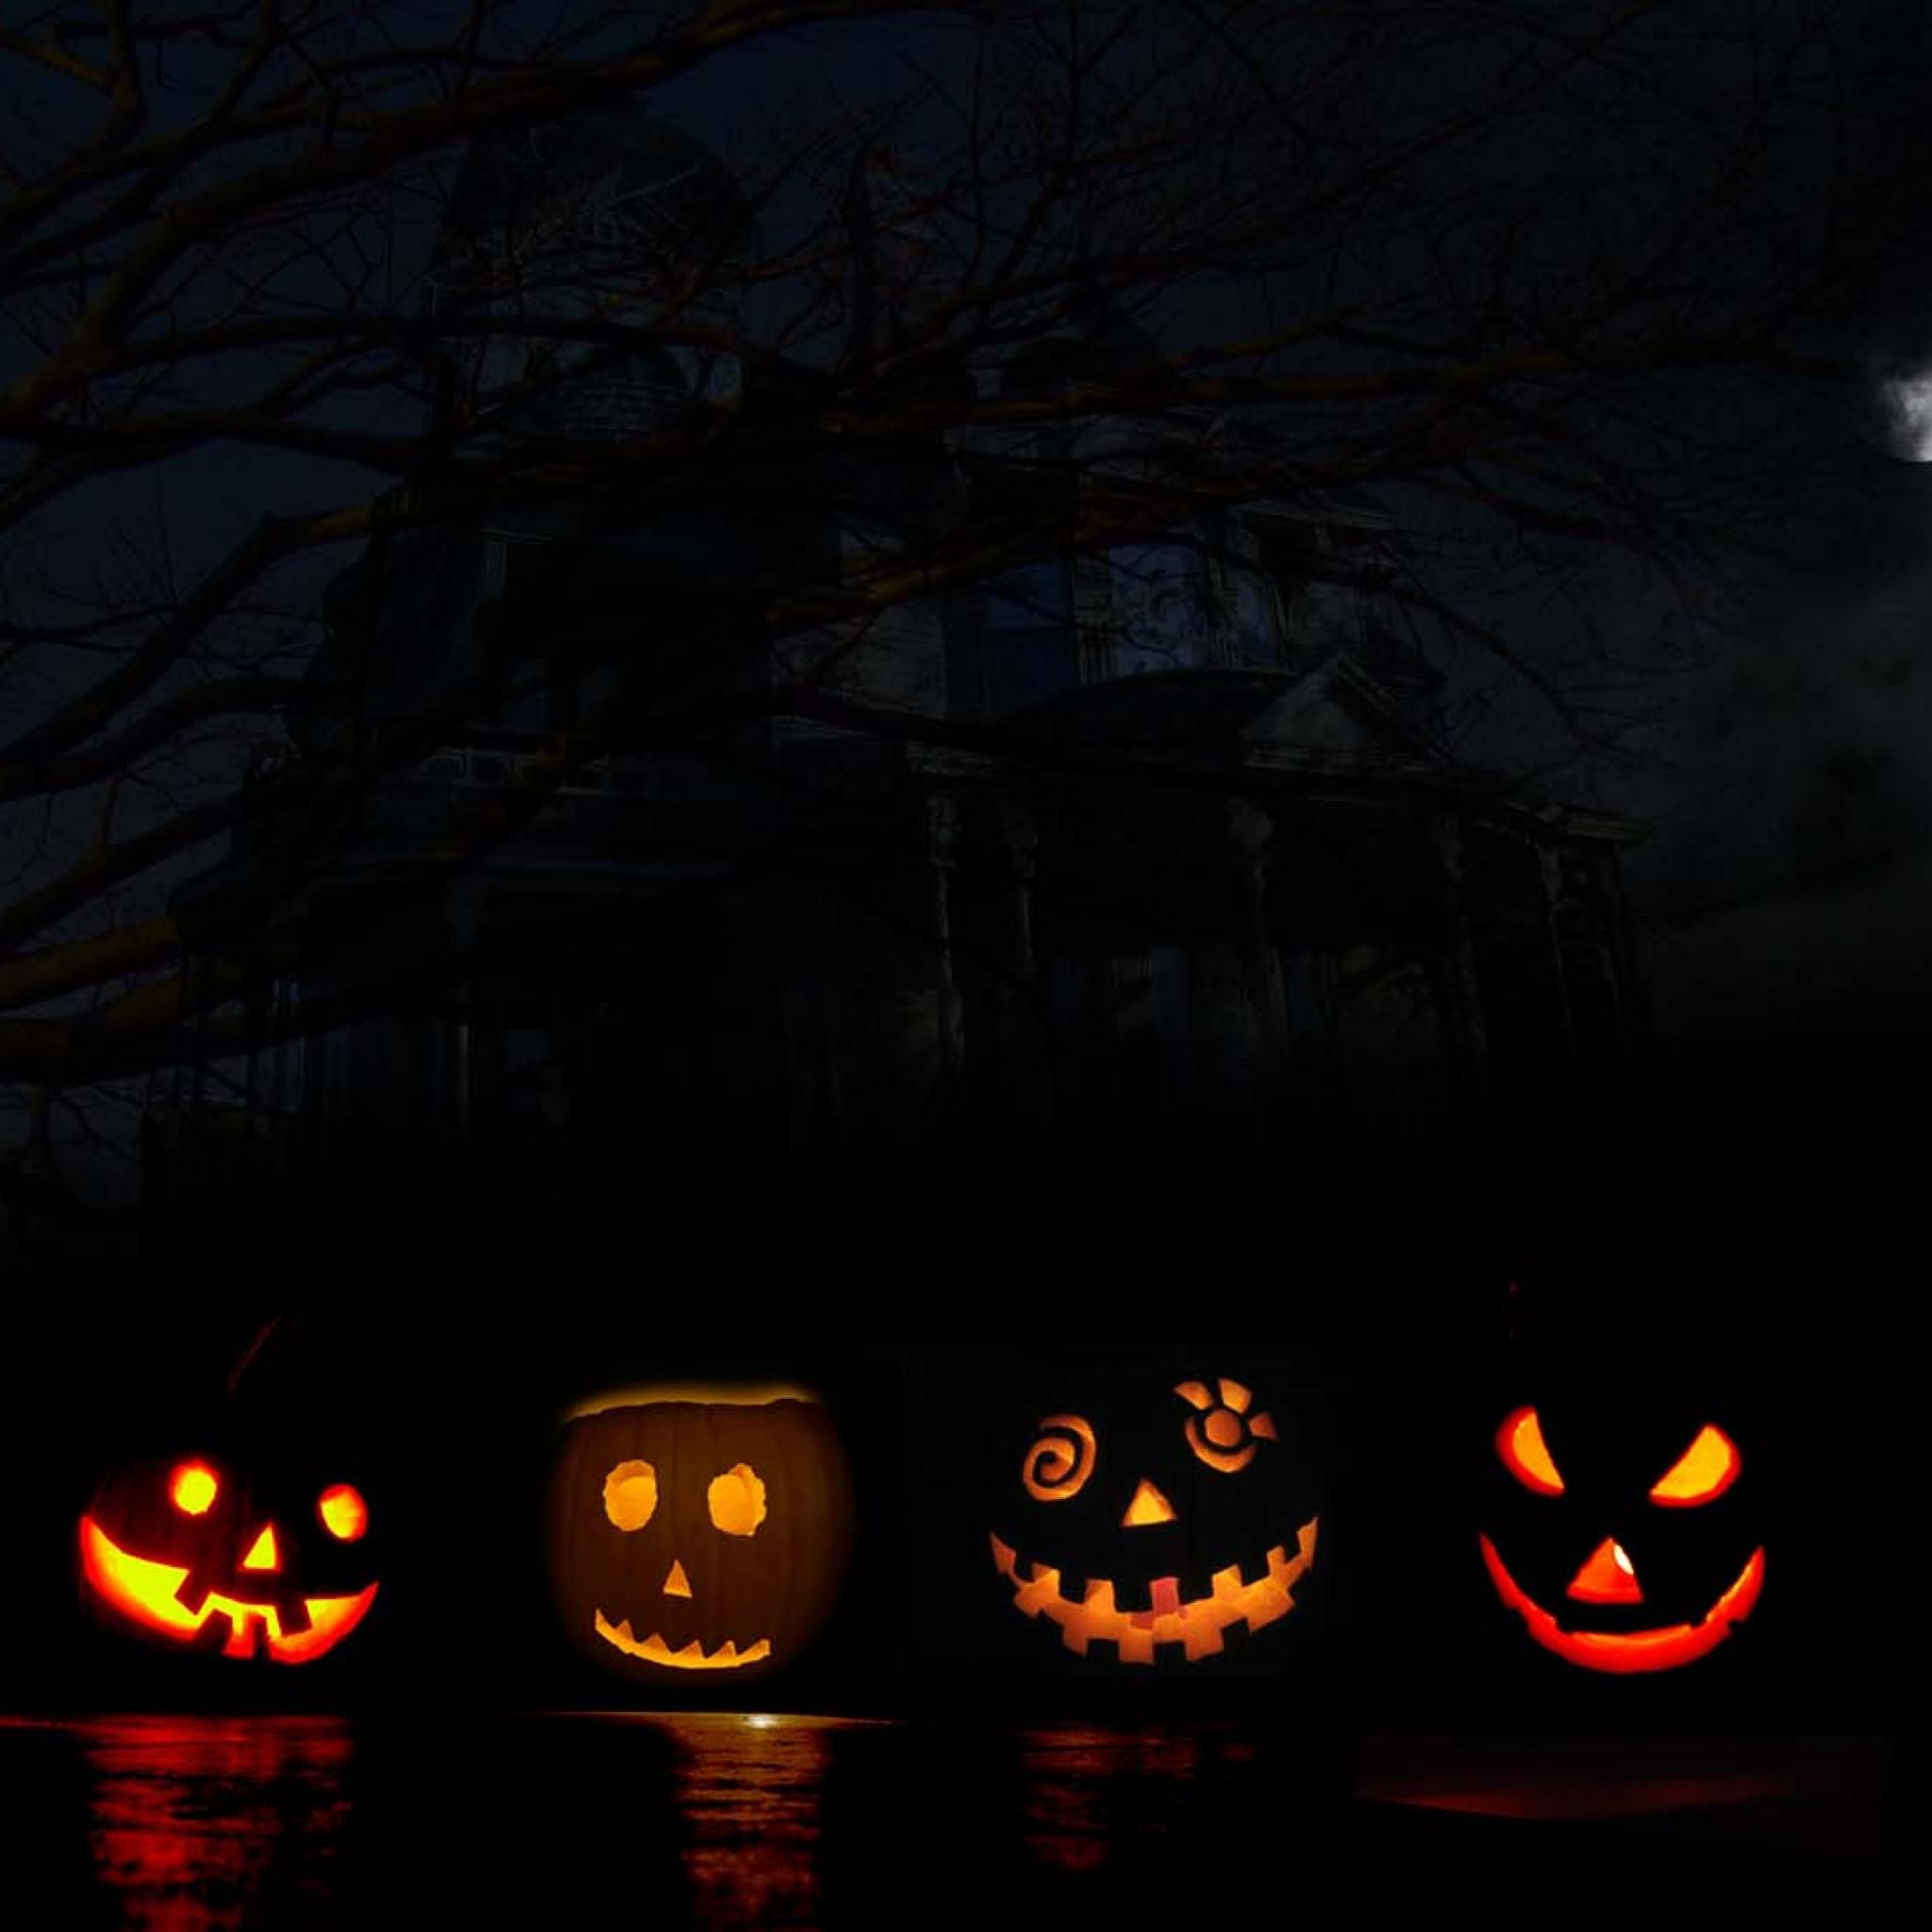 Haunted House Lit Pumkins Ipad Wallpaper Hd Ipad Wallpaper Halloween Wallpaper Iphone Pumpkin Wallpaper